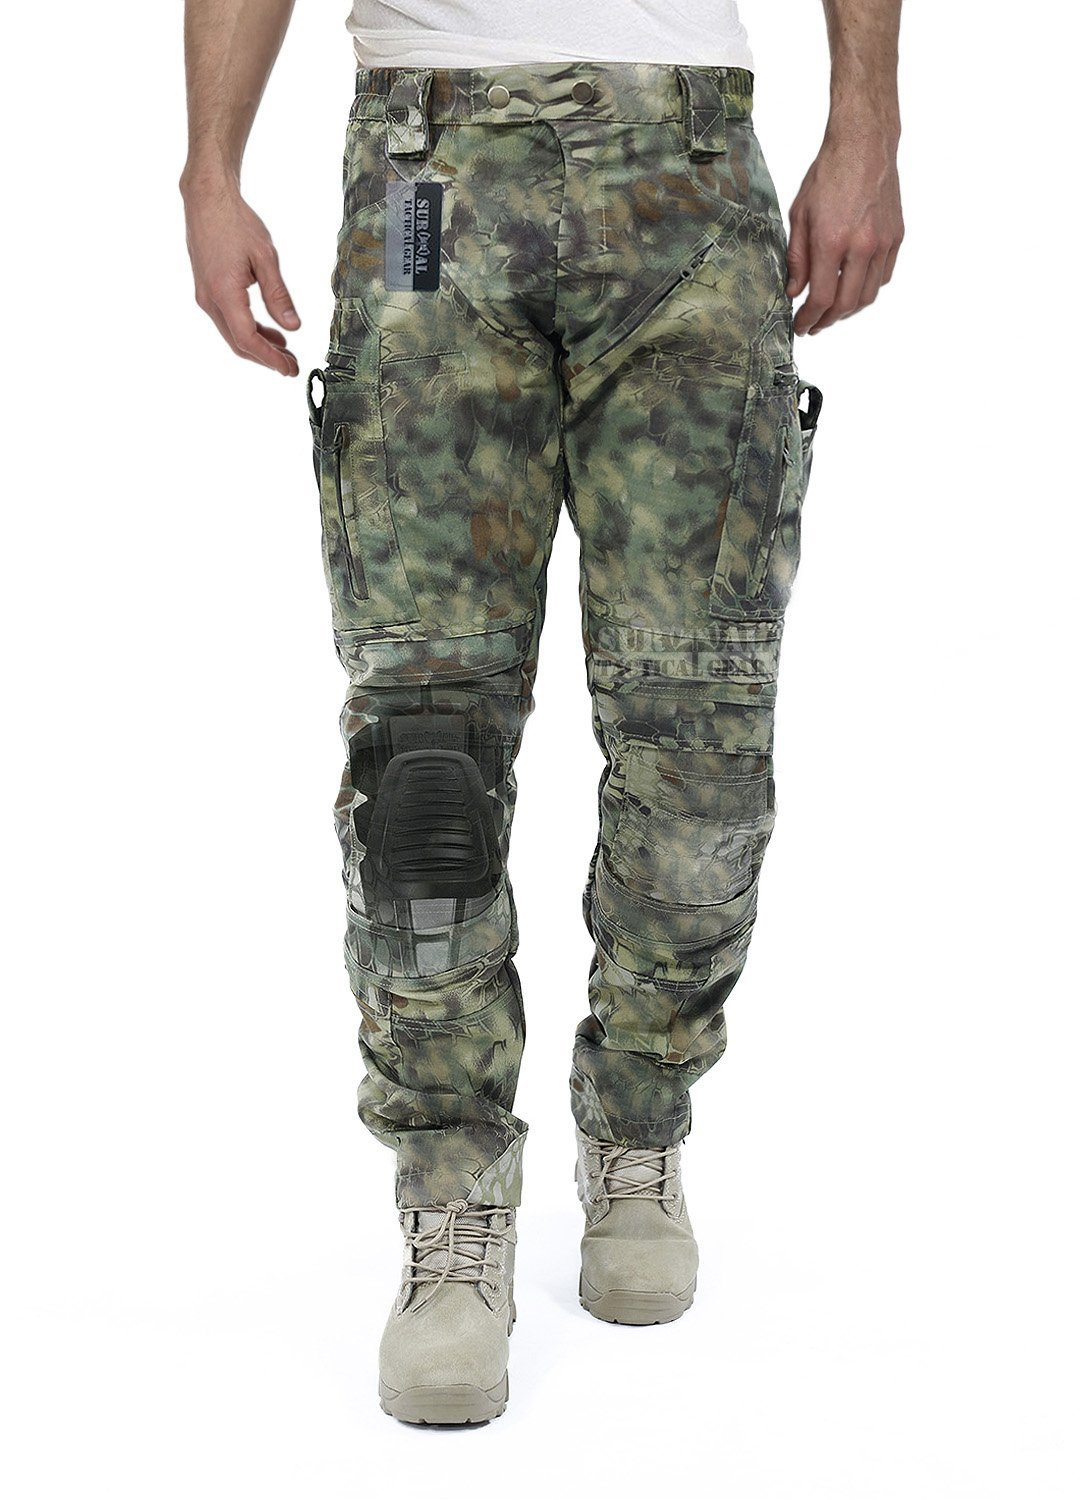 Survival Tactical Gear Men's Airsoft Wargame Tactical Pants with Knee Protection System & Air Circulation System (Mandrake Camo, S) by Survival Tactical Gear